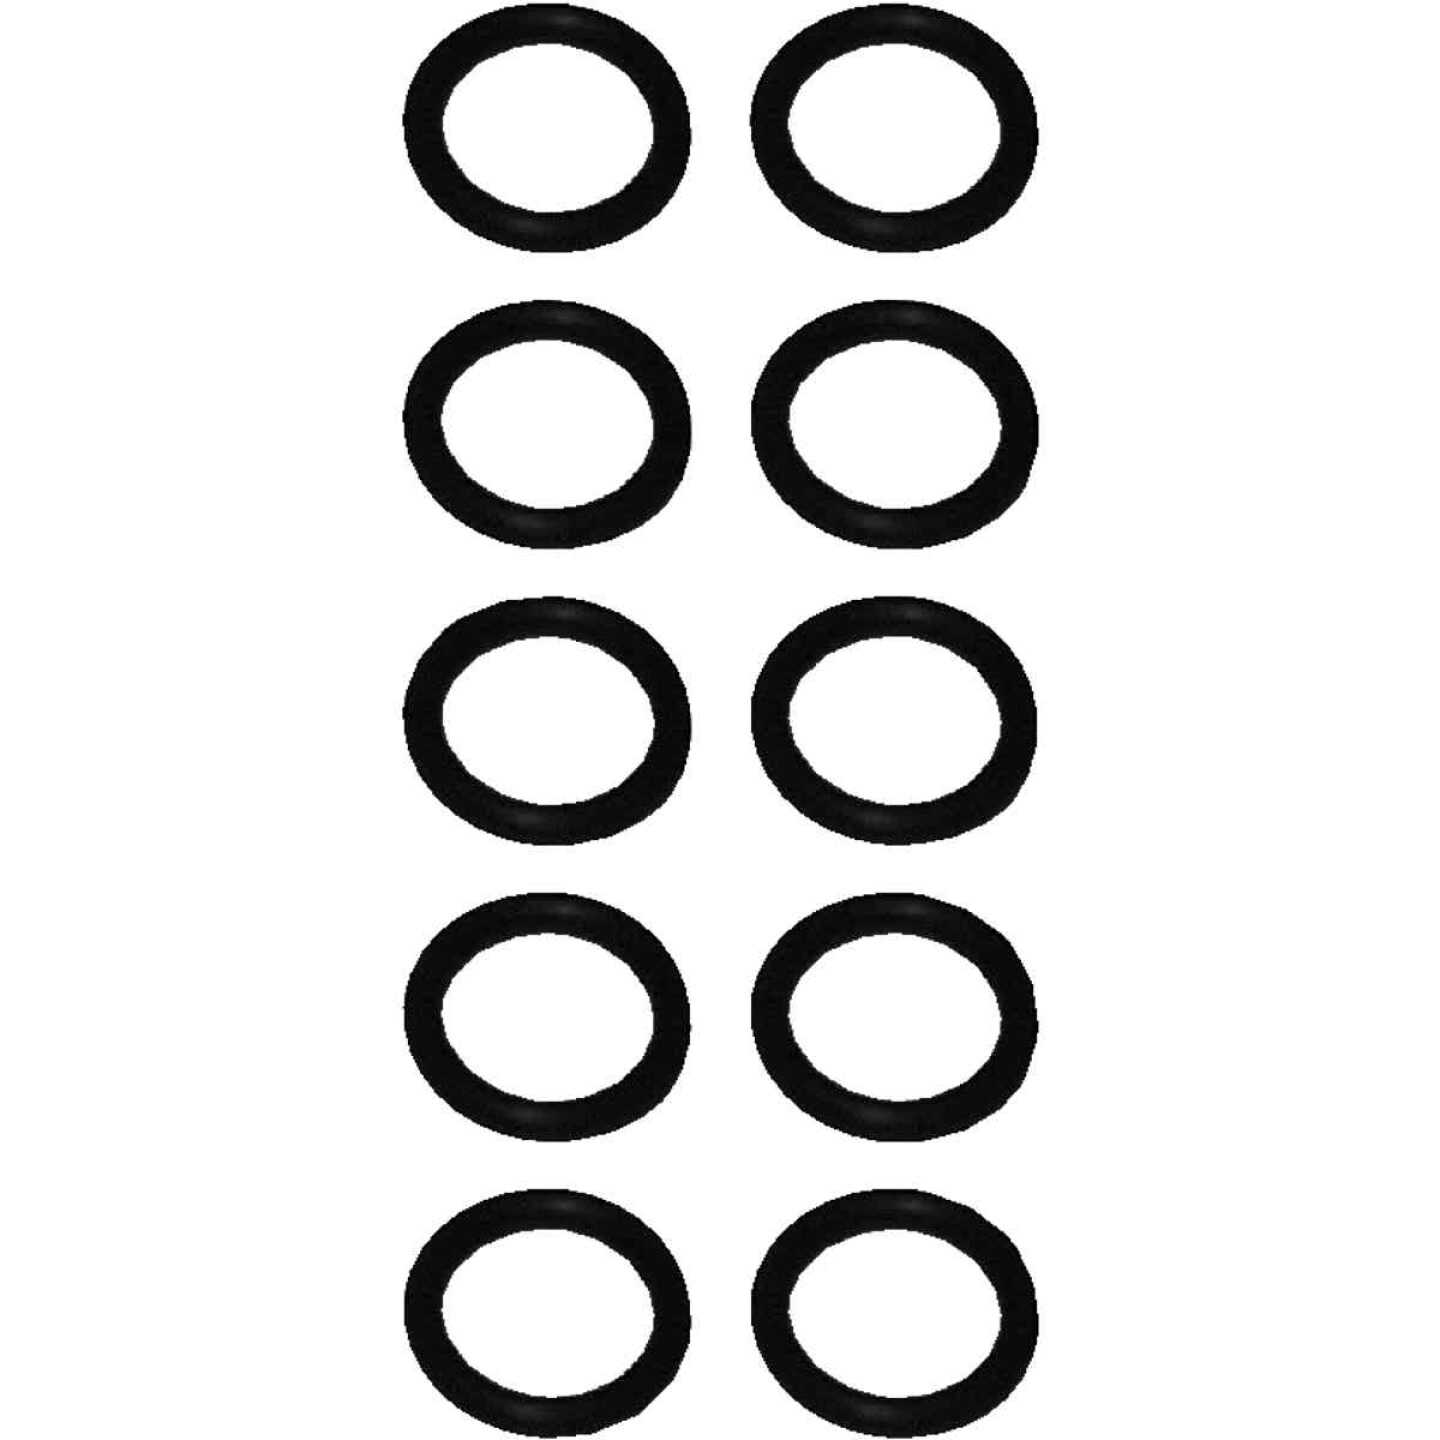 Mi-T-M 1/2 In. x 11/16 In. Pressure Washer O-Ring (10-Pack) Image 1